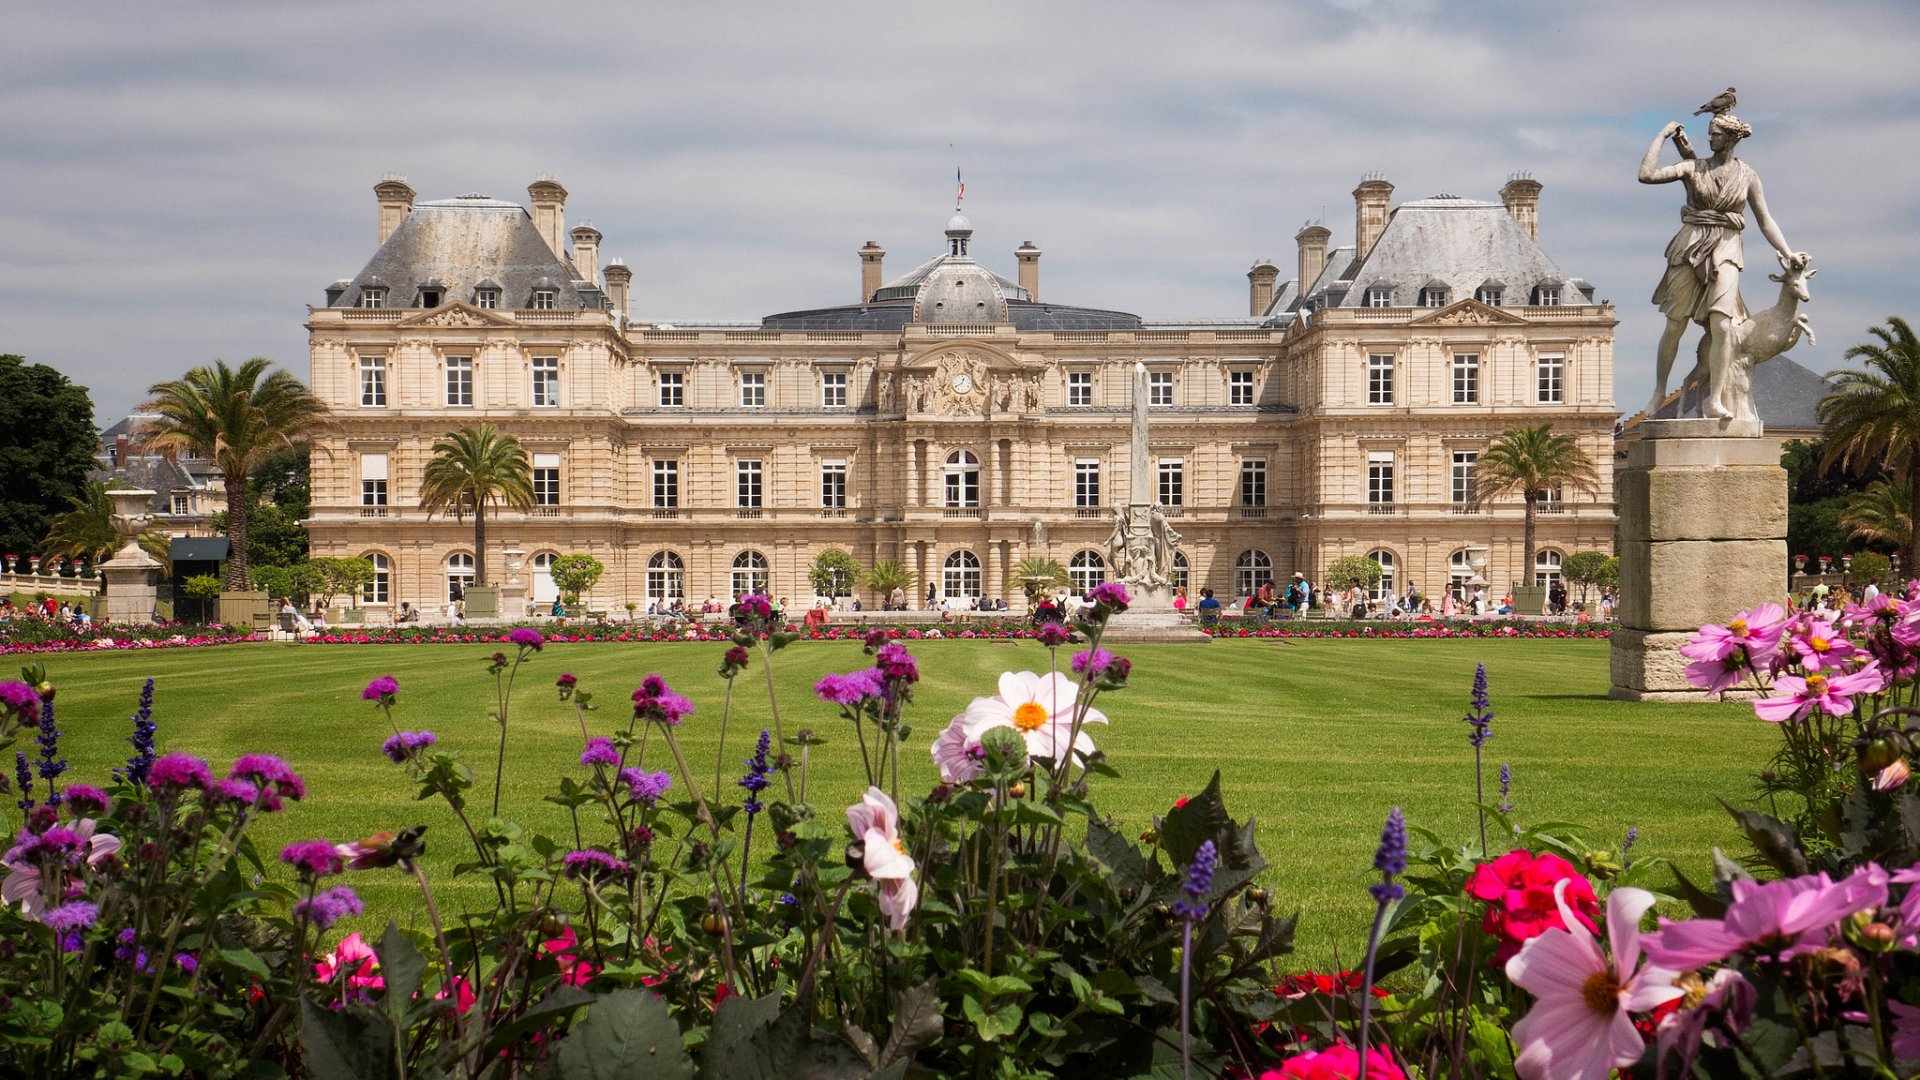 luxembourg palace paris france hd wallpaper background image 2048x1152 id 651095. Black Bedroom Furniture Sets. Home Design Ideas